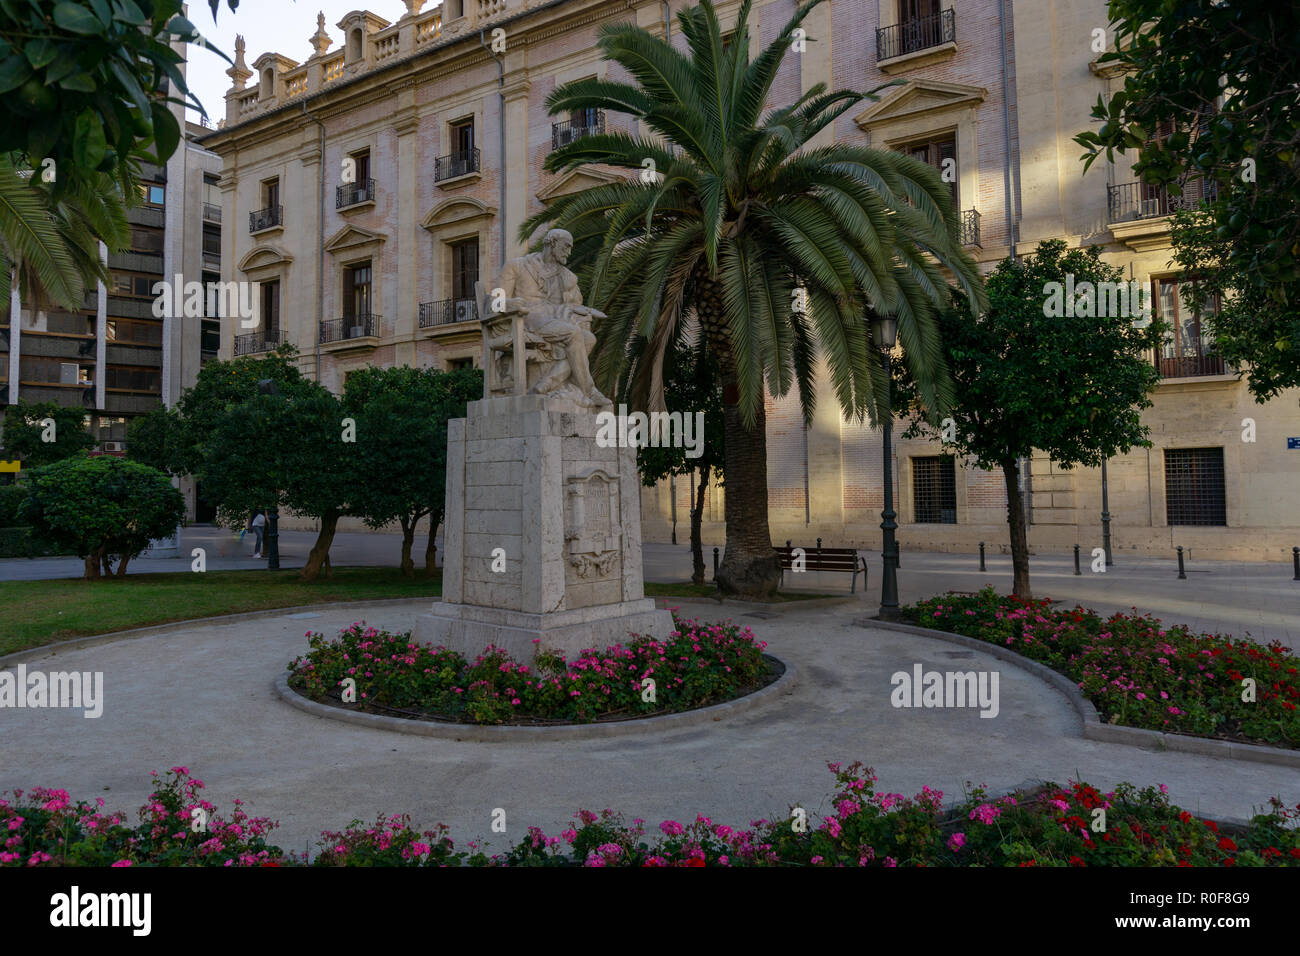 Statue in Valencia Stockbild